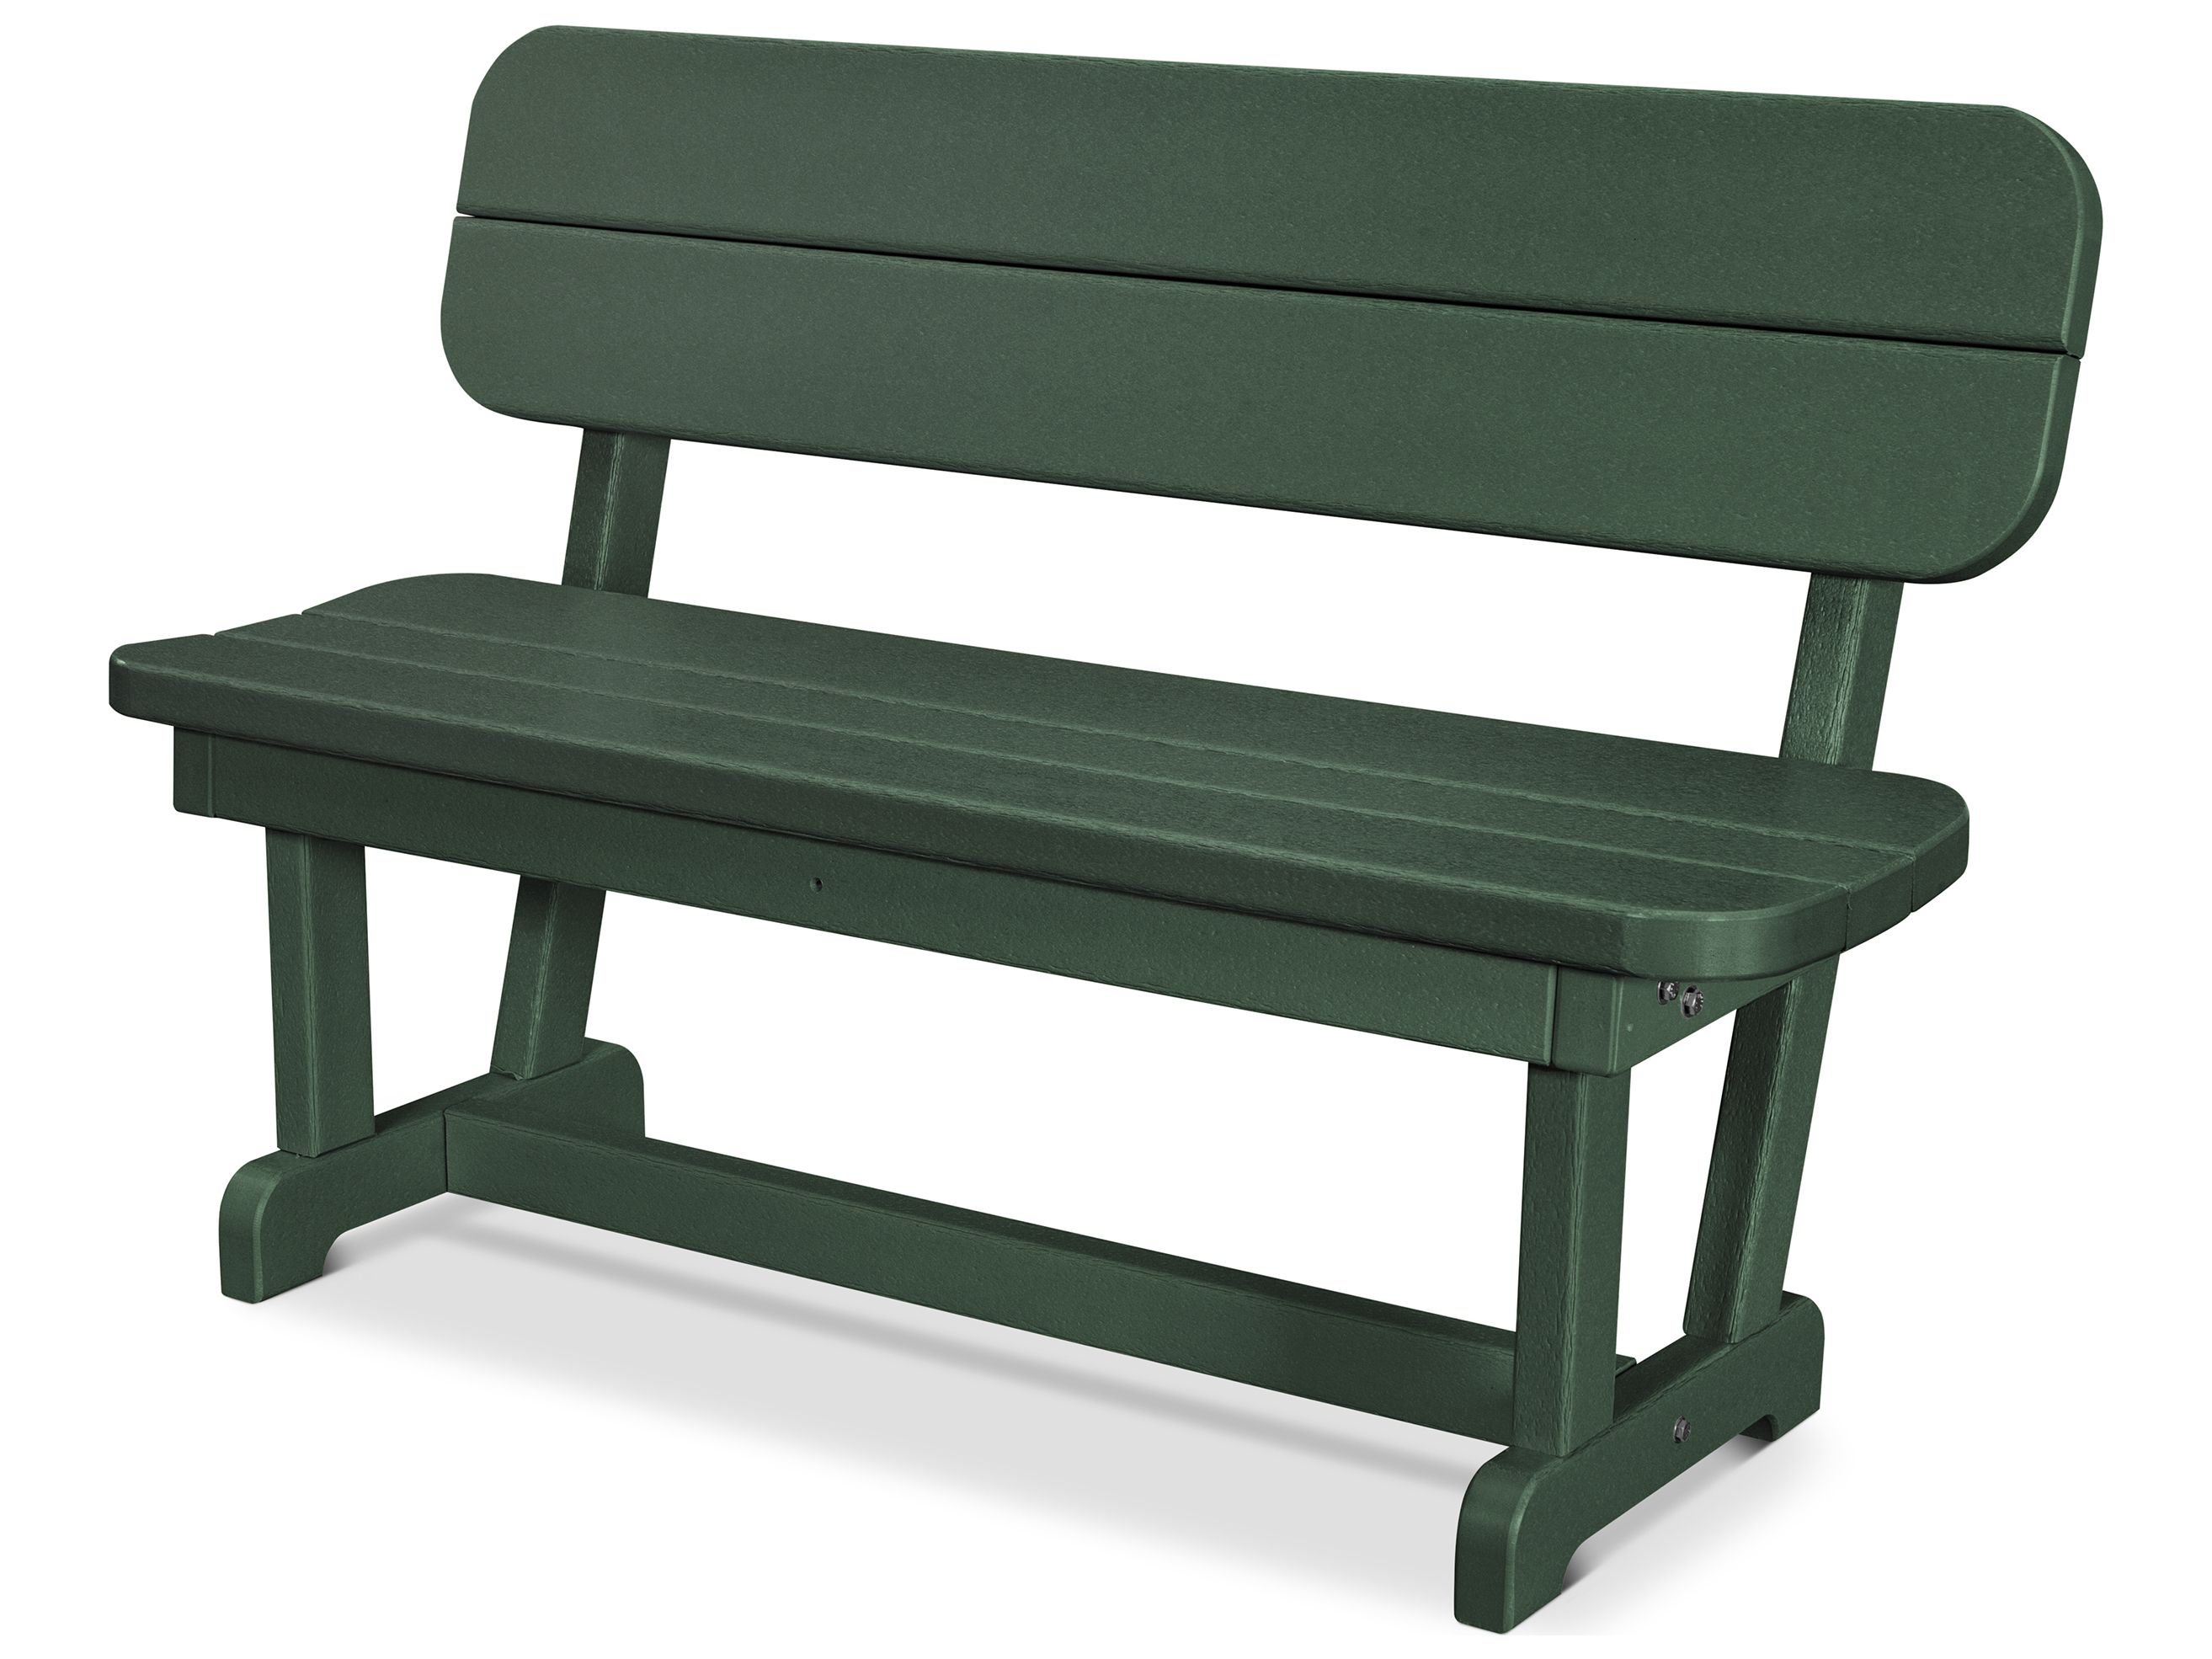 Polywood Park Recycled Plastic 48 Bench Pwpb48